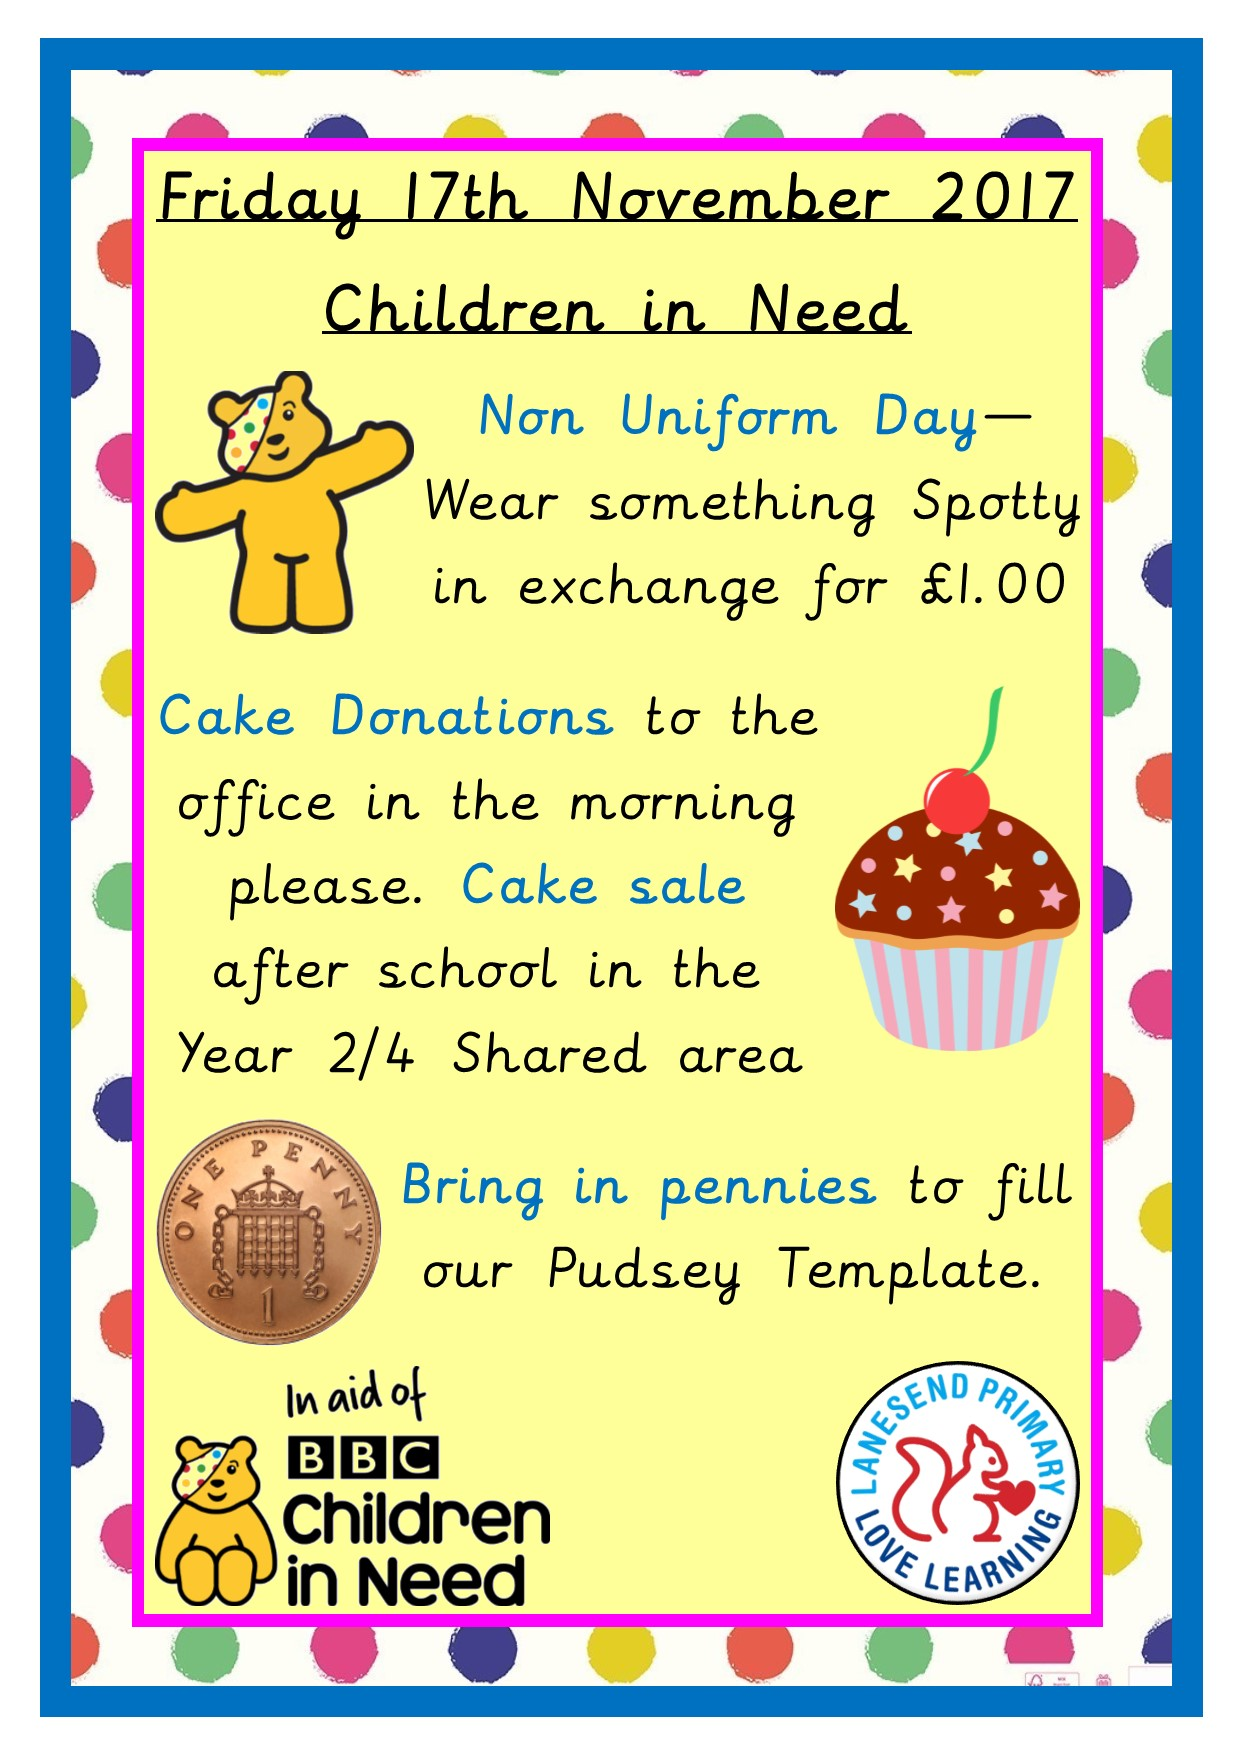 Plans for Children in Need 2017